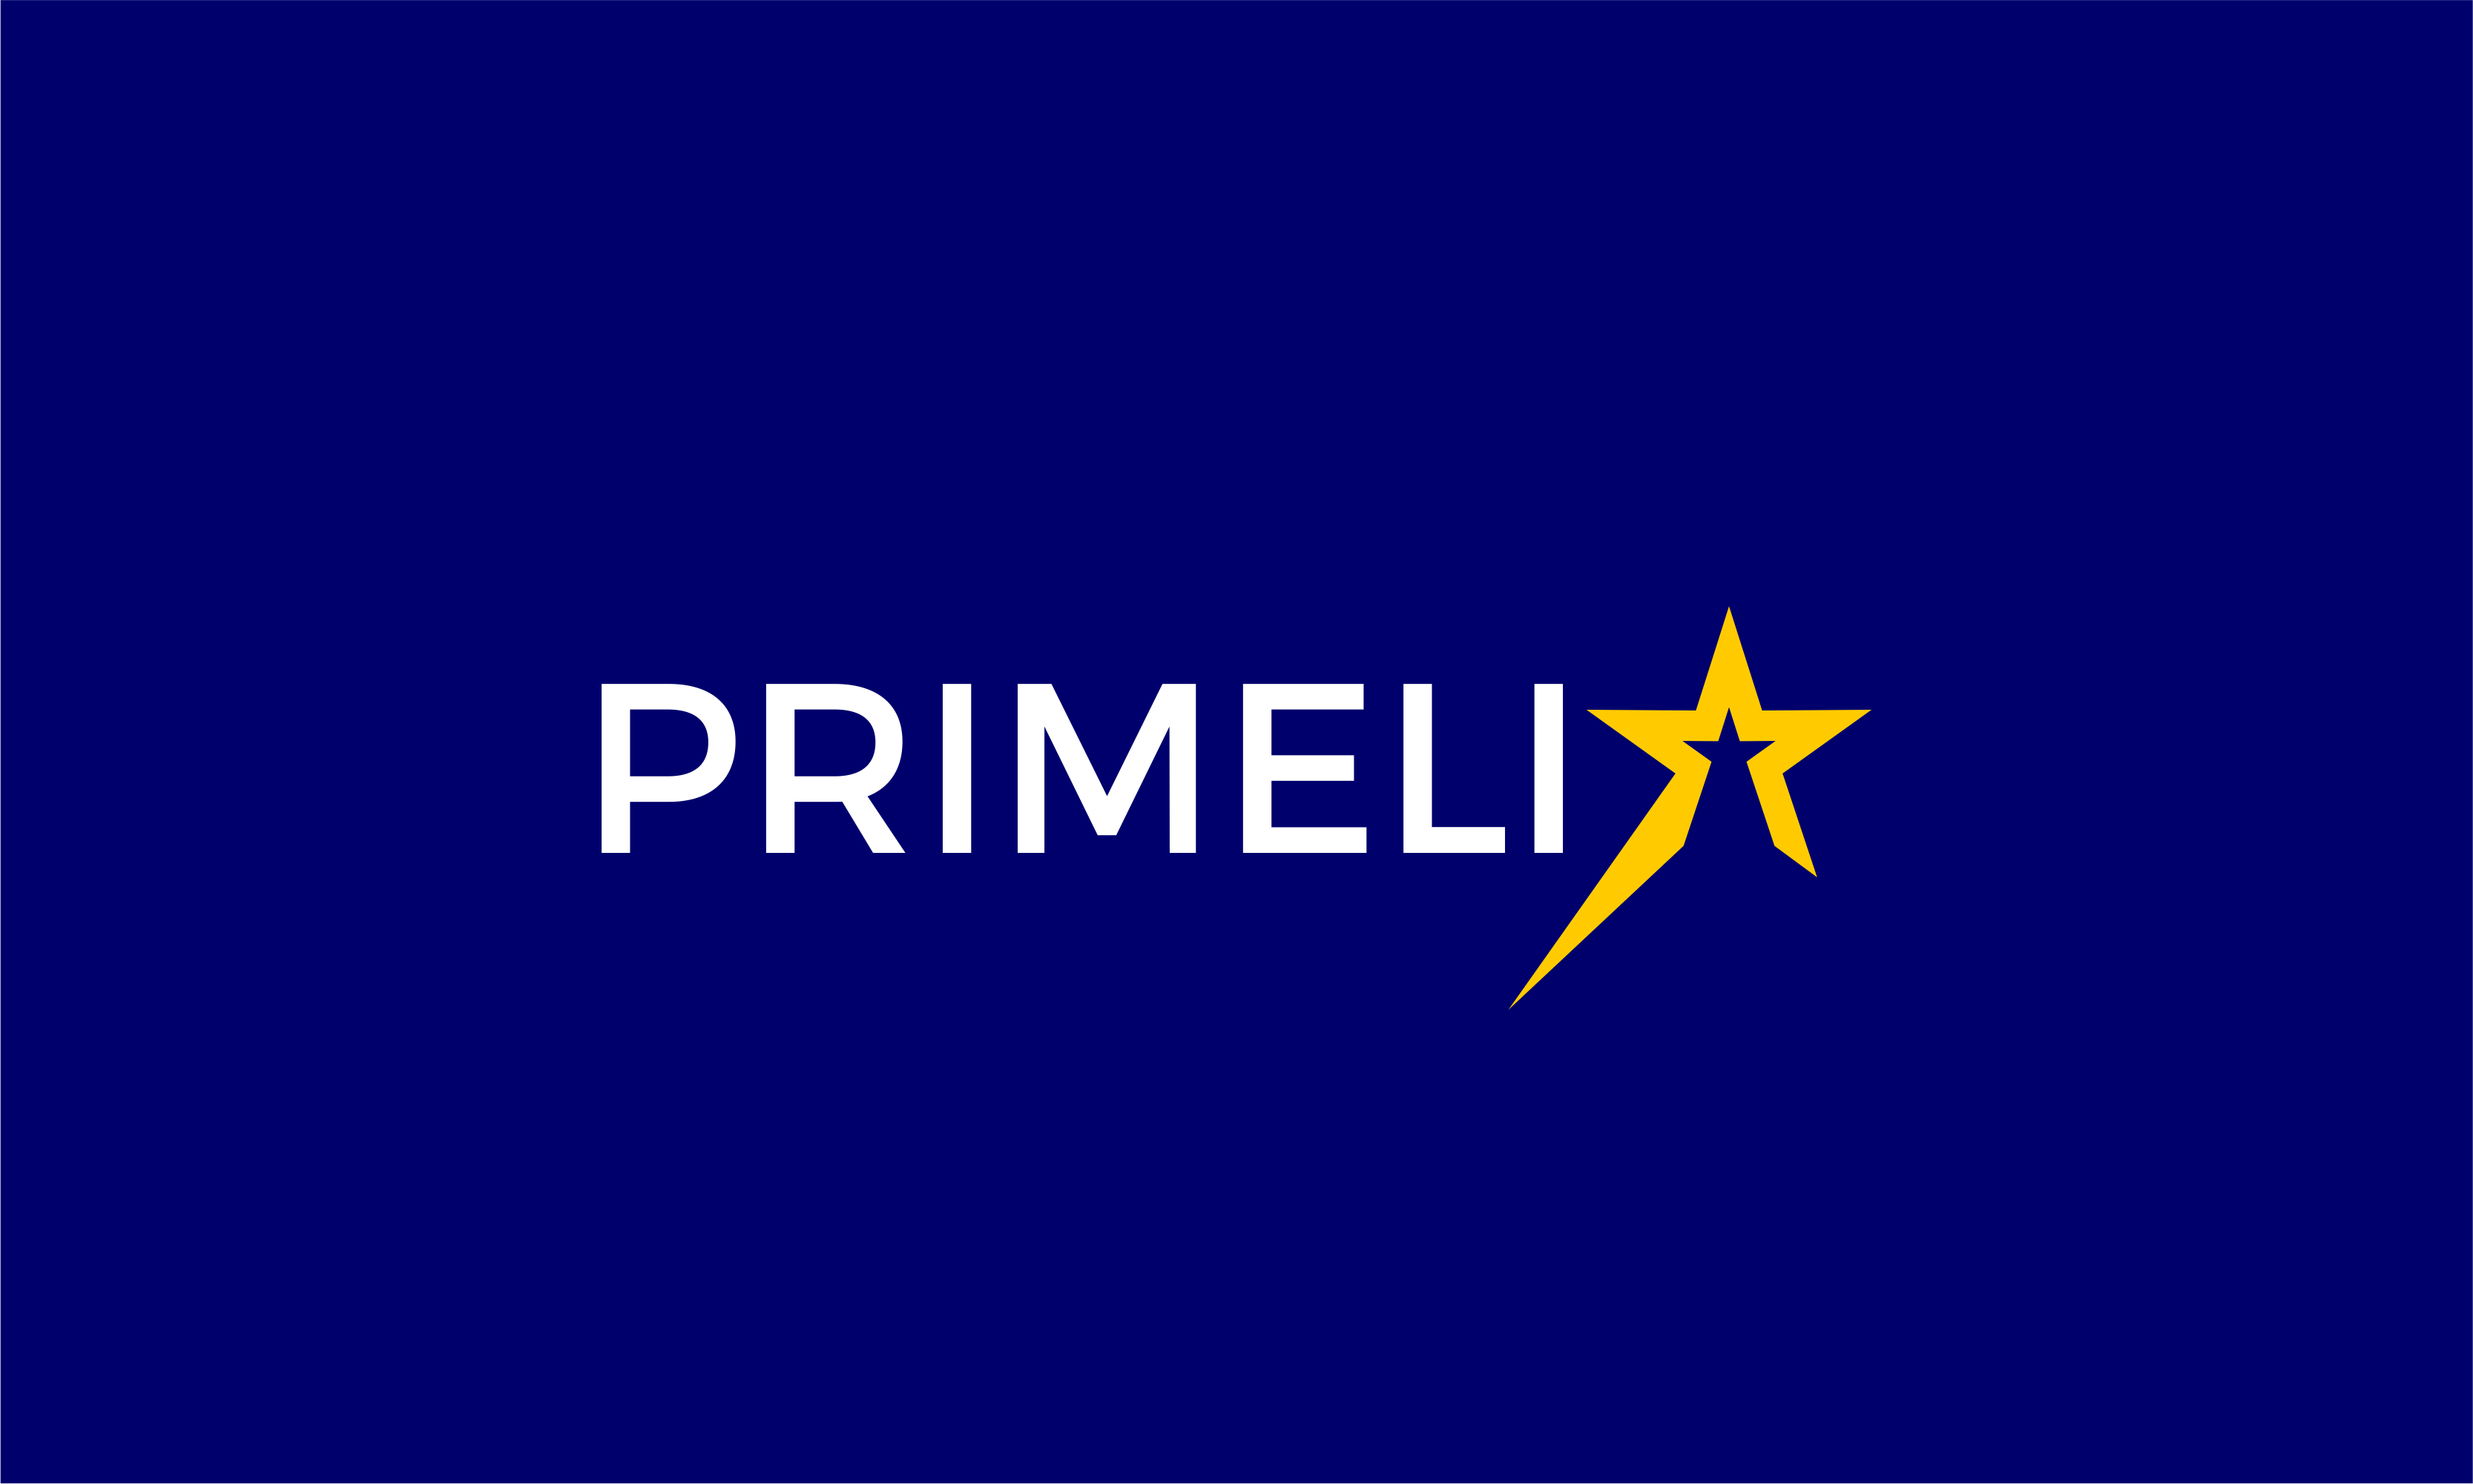 Primelia - Business business name for sale